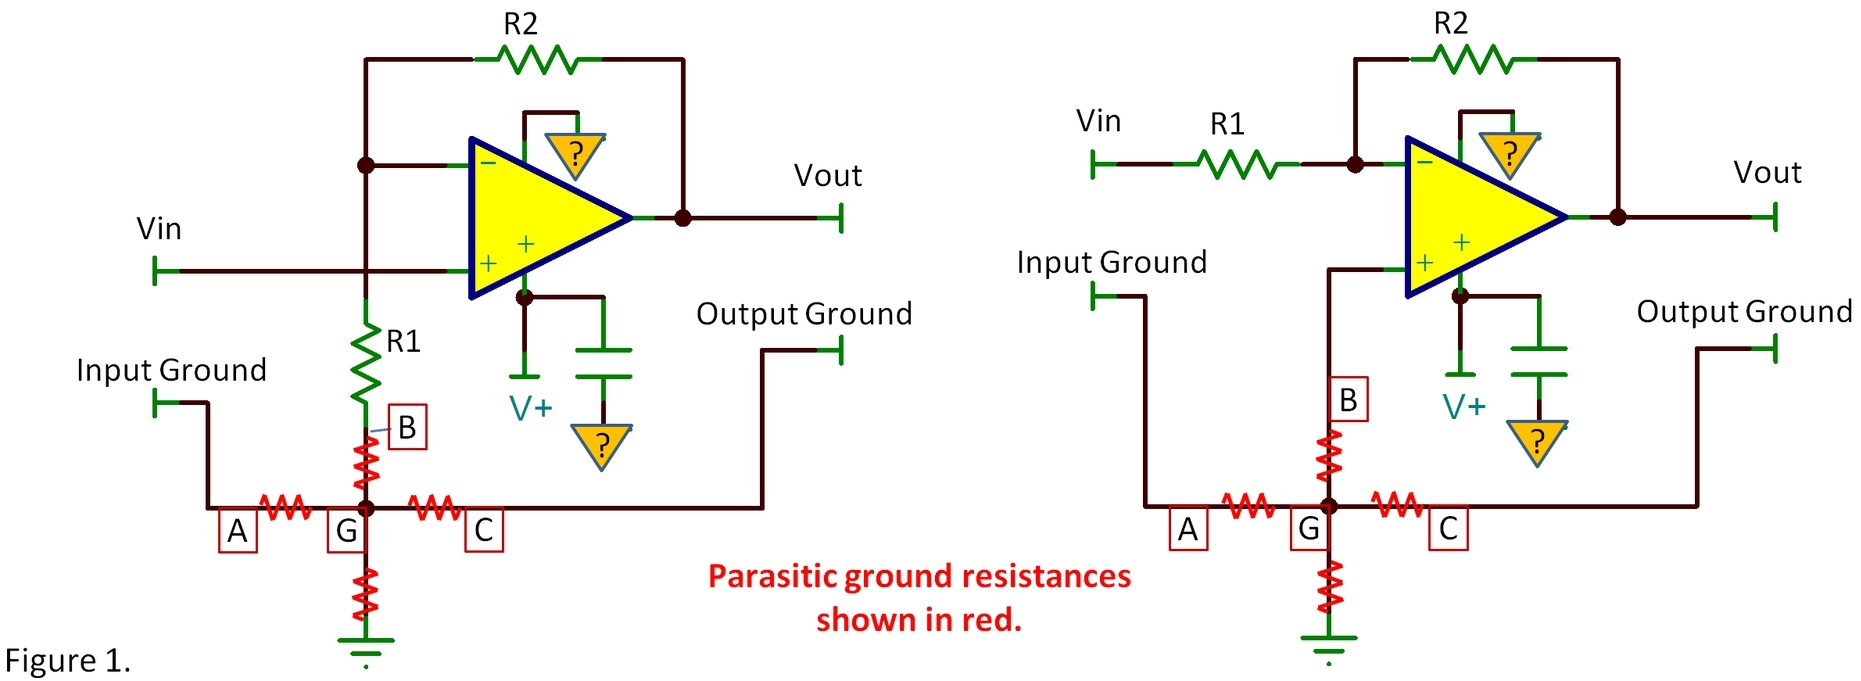 Very Simple Led Flashing With Sound further Problem In Wien Bridge Oscillator further Sound Detector Using Lm324 as well Boss Ds1 Analysis additionally Short Circuit Protection For Almost Any Power Supp. on op amp power supply circuit